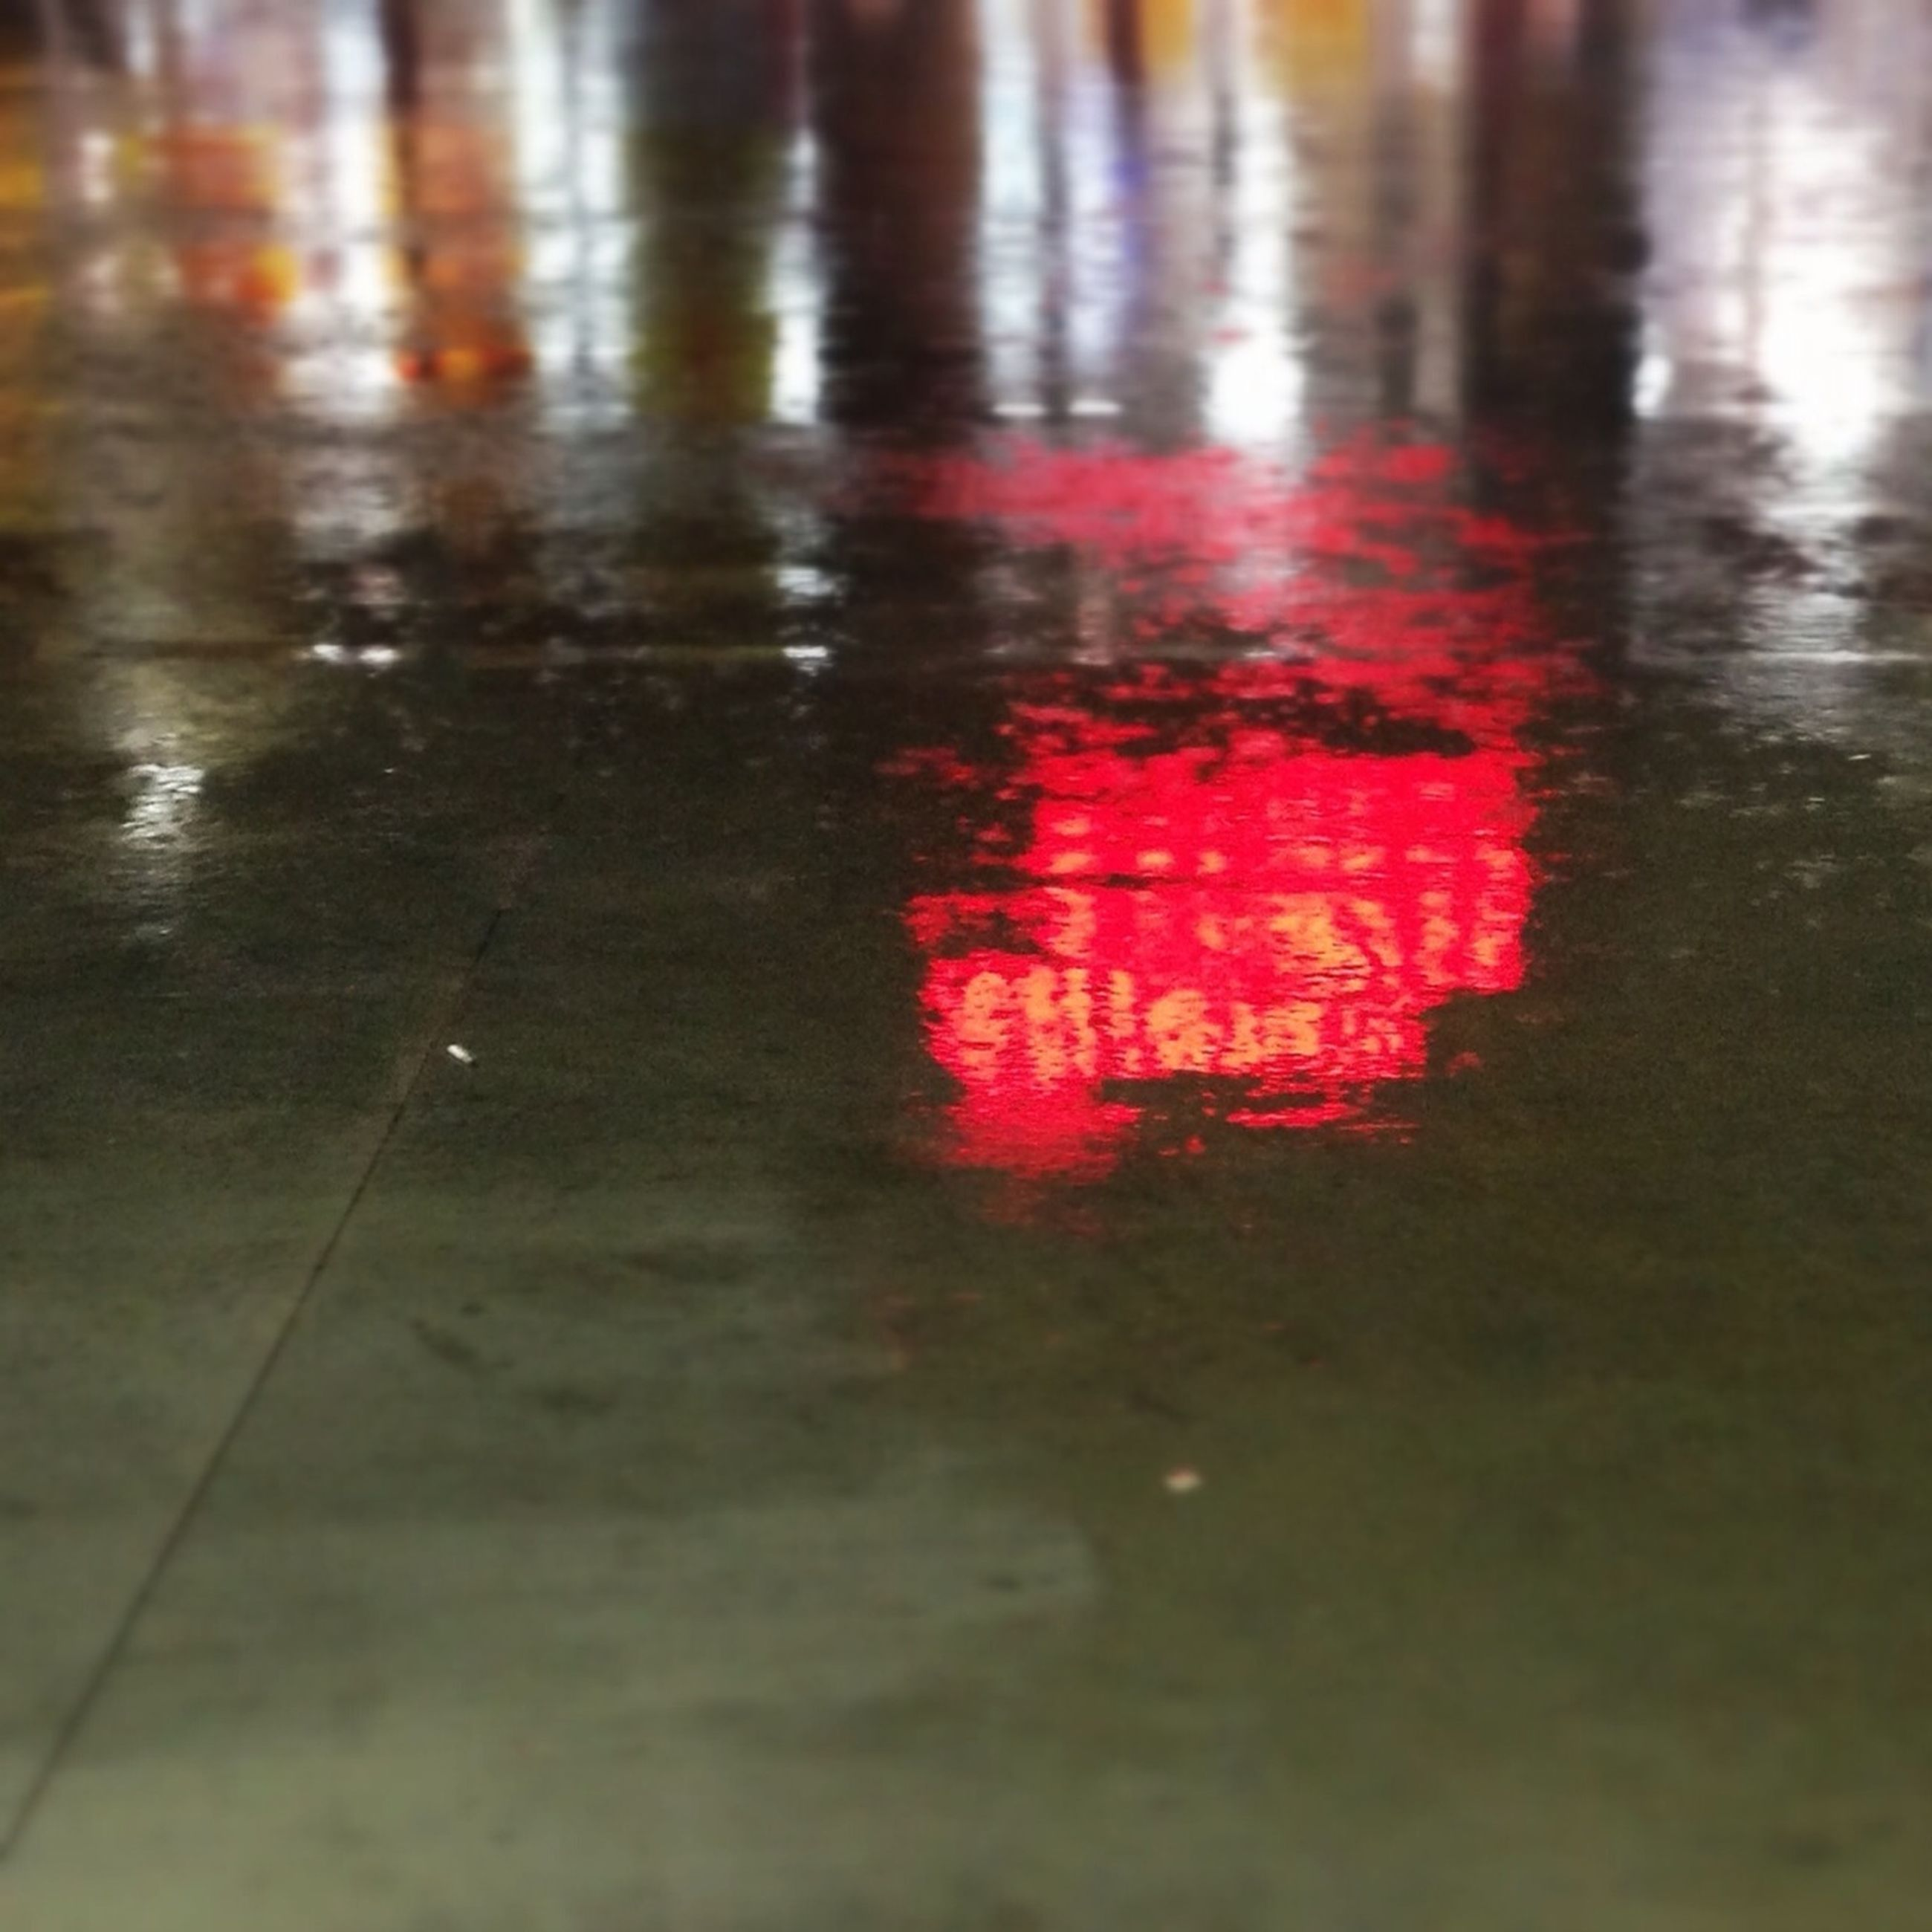 water, reflection, red, street, rain, high angle view, wet, road, text, transportation, puddle, communication, western script, safety, weather, outdoors, guidance, waterfront, no people, road sign